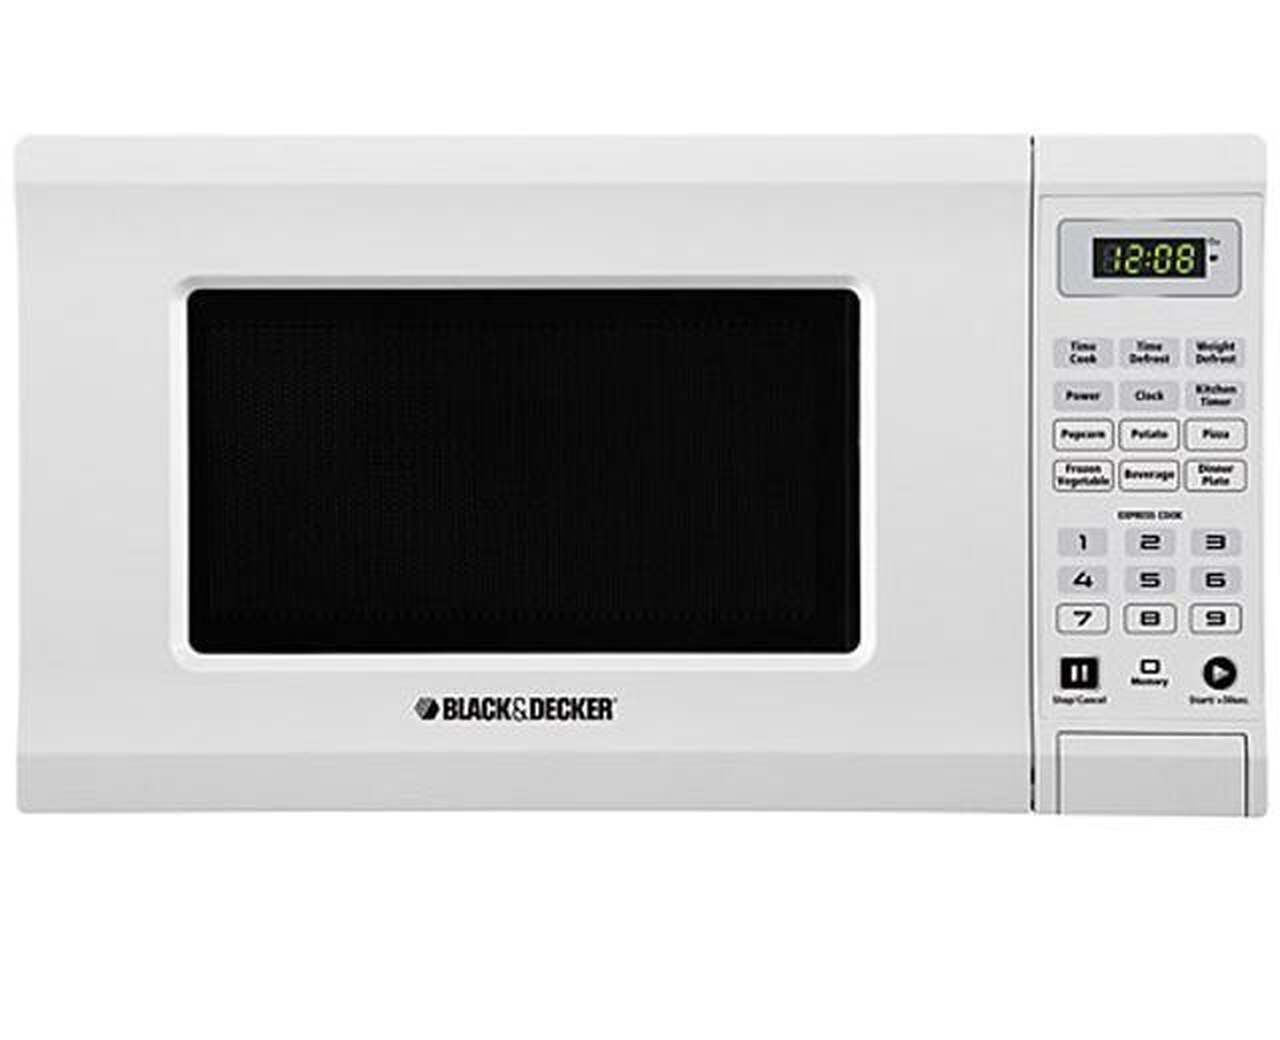 Microwave Black & Decker 0.7 Cubic Feet White